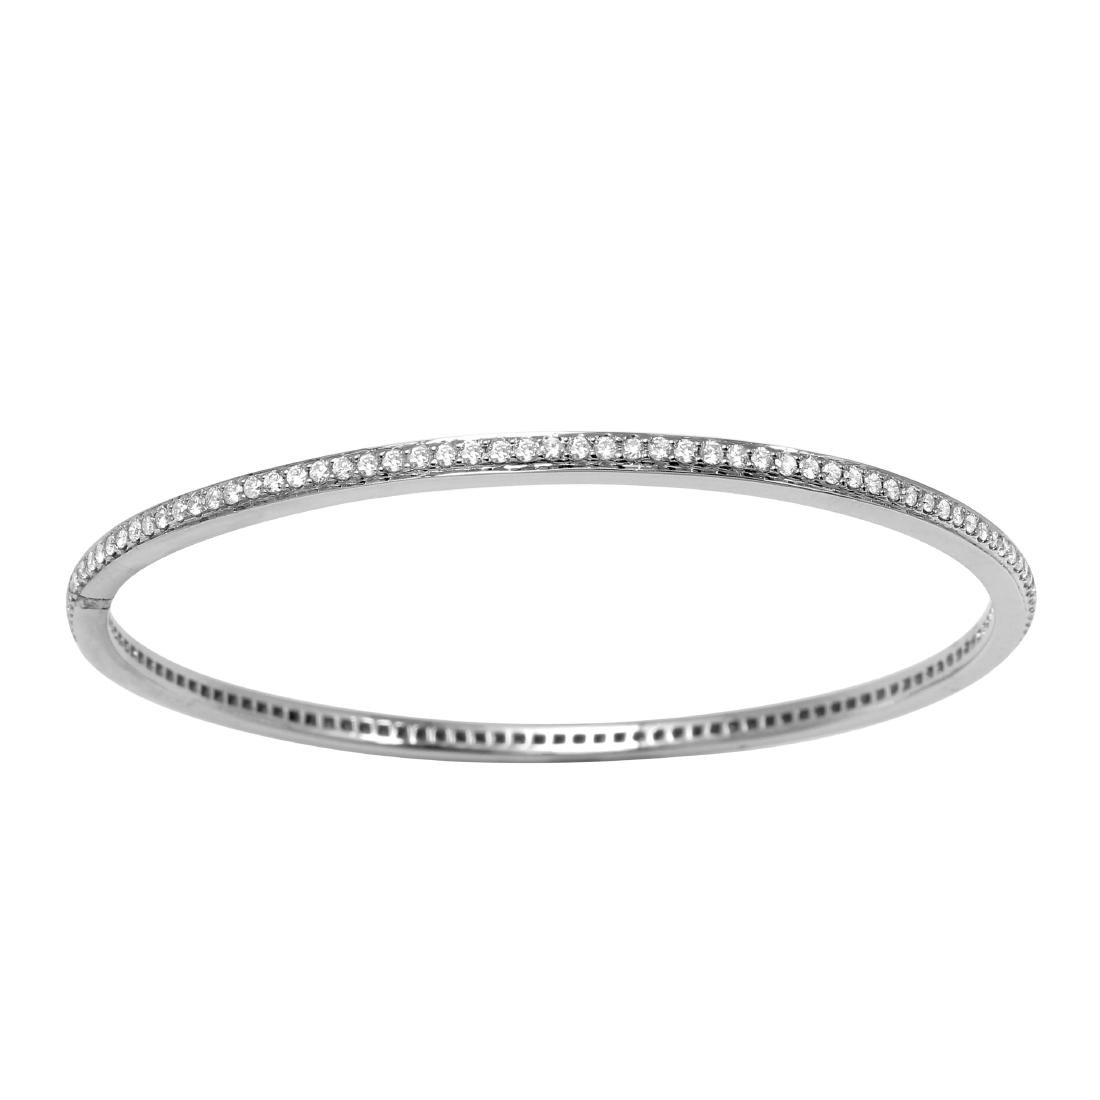 14KT White Gold Diamond Bangle Bracelet